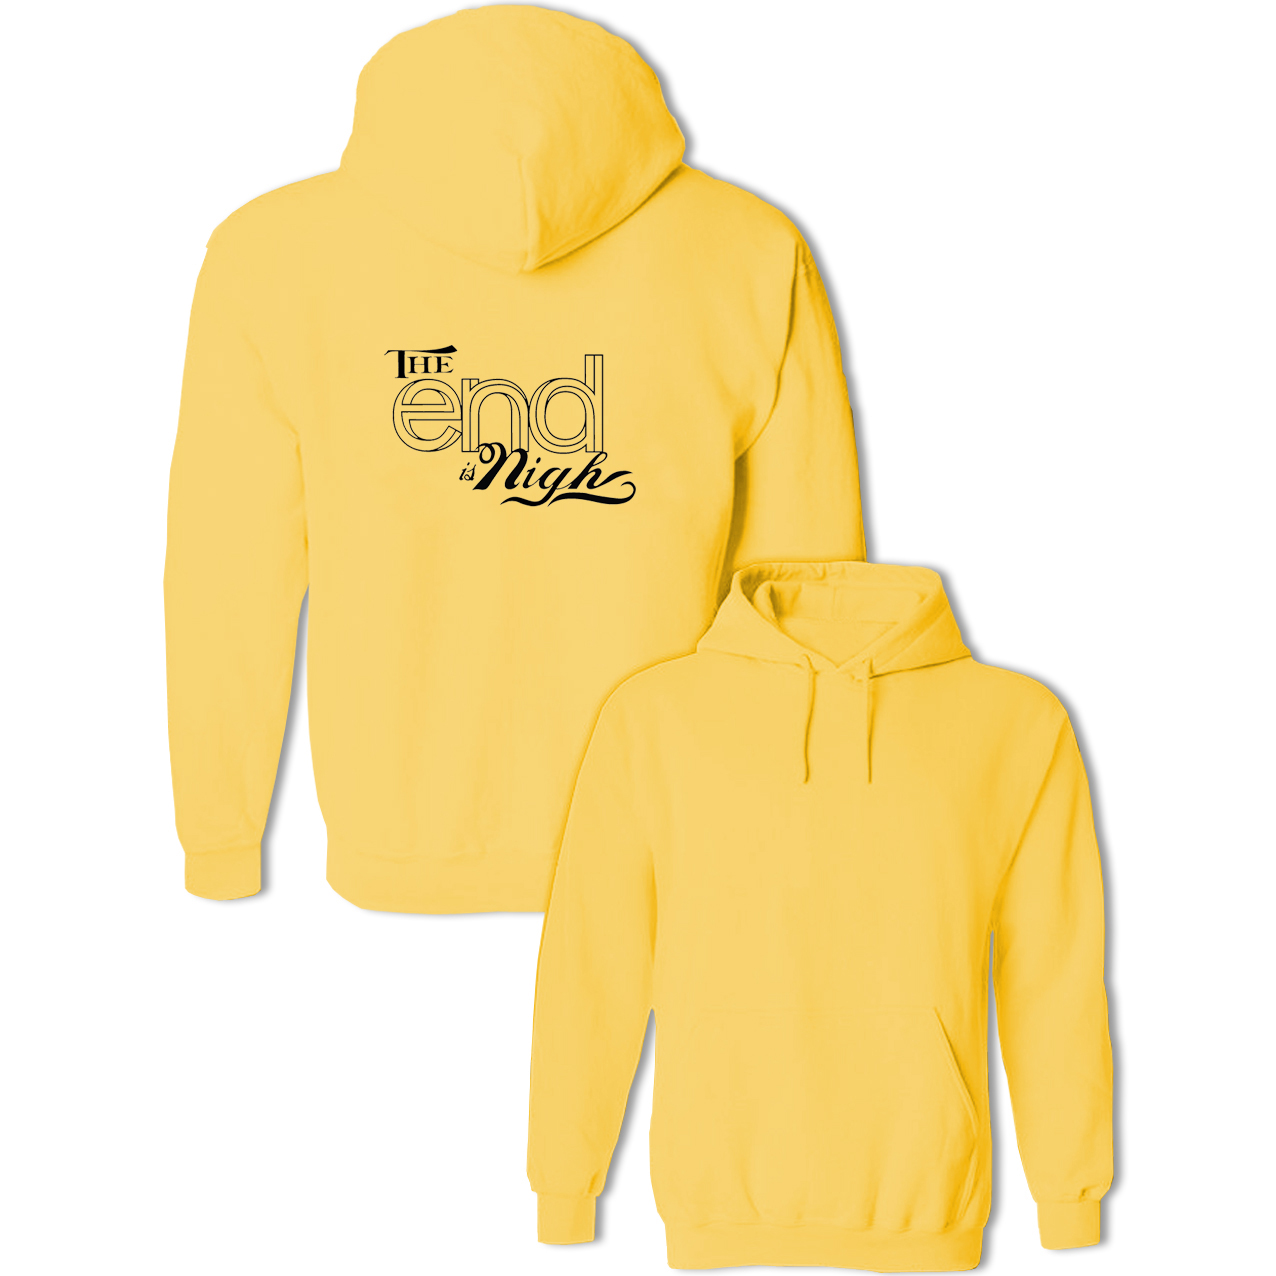 The End is Nigh Hip Hop Fashion Pullovers Sweatshirts Women Men Spring Autumn Hoodies For Girl Lady Jackets Hooded Streetwear